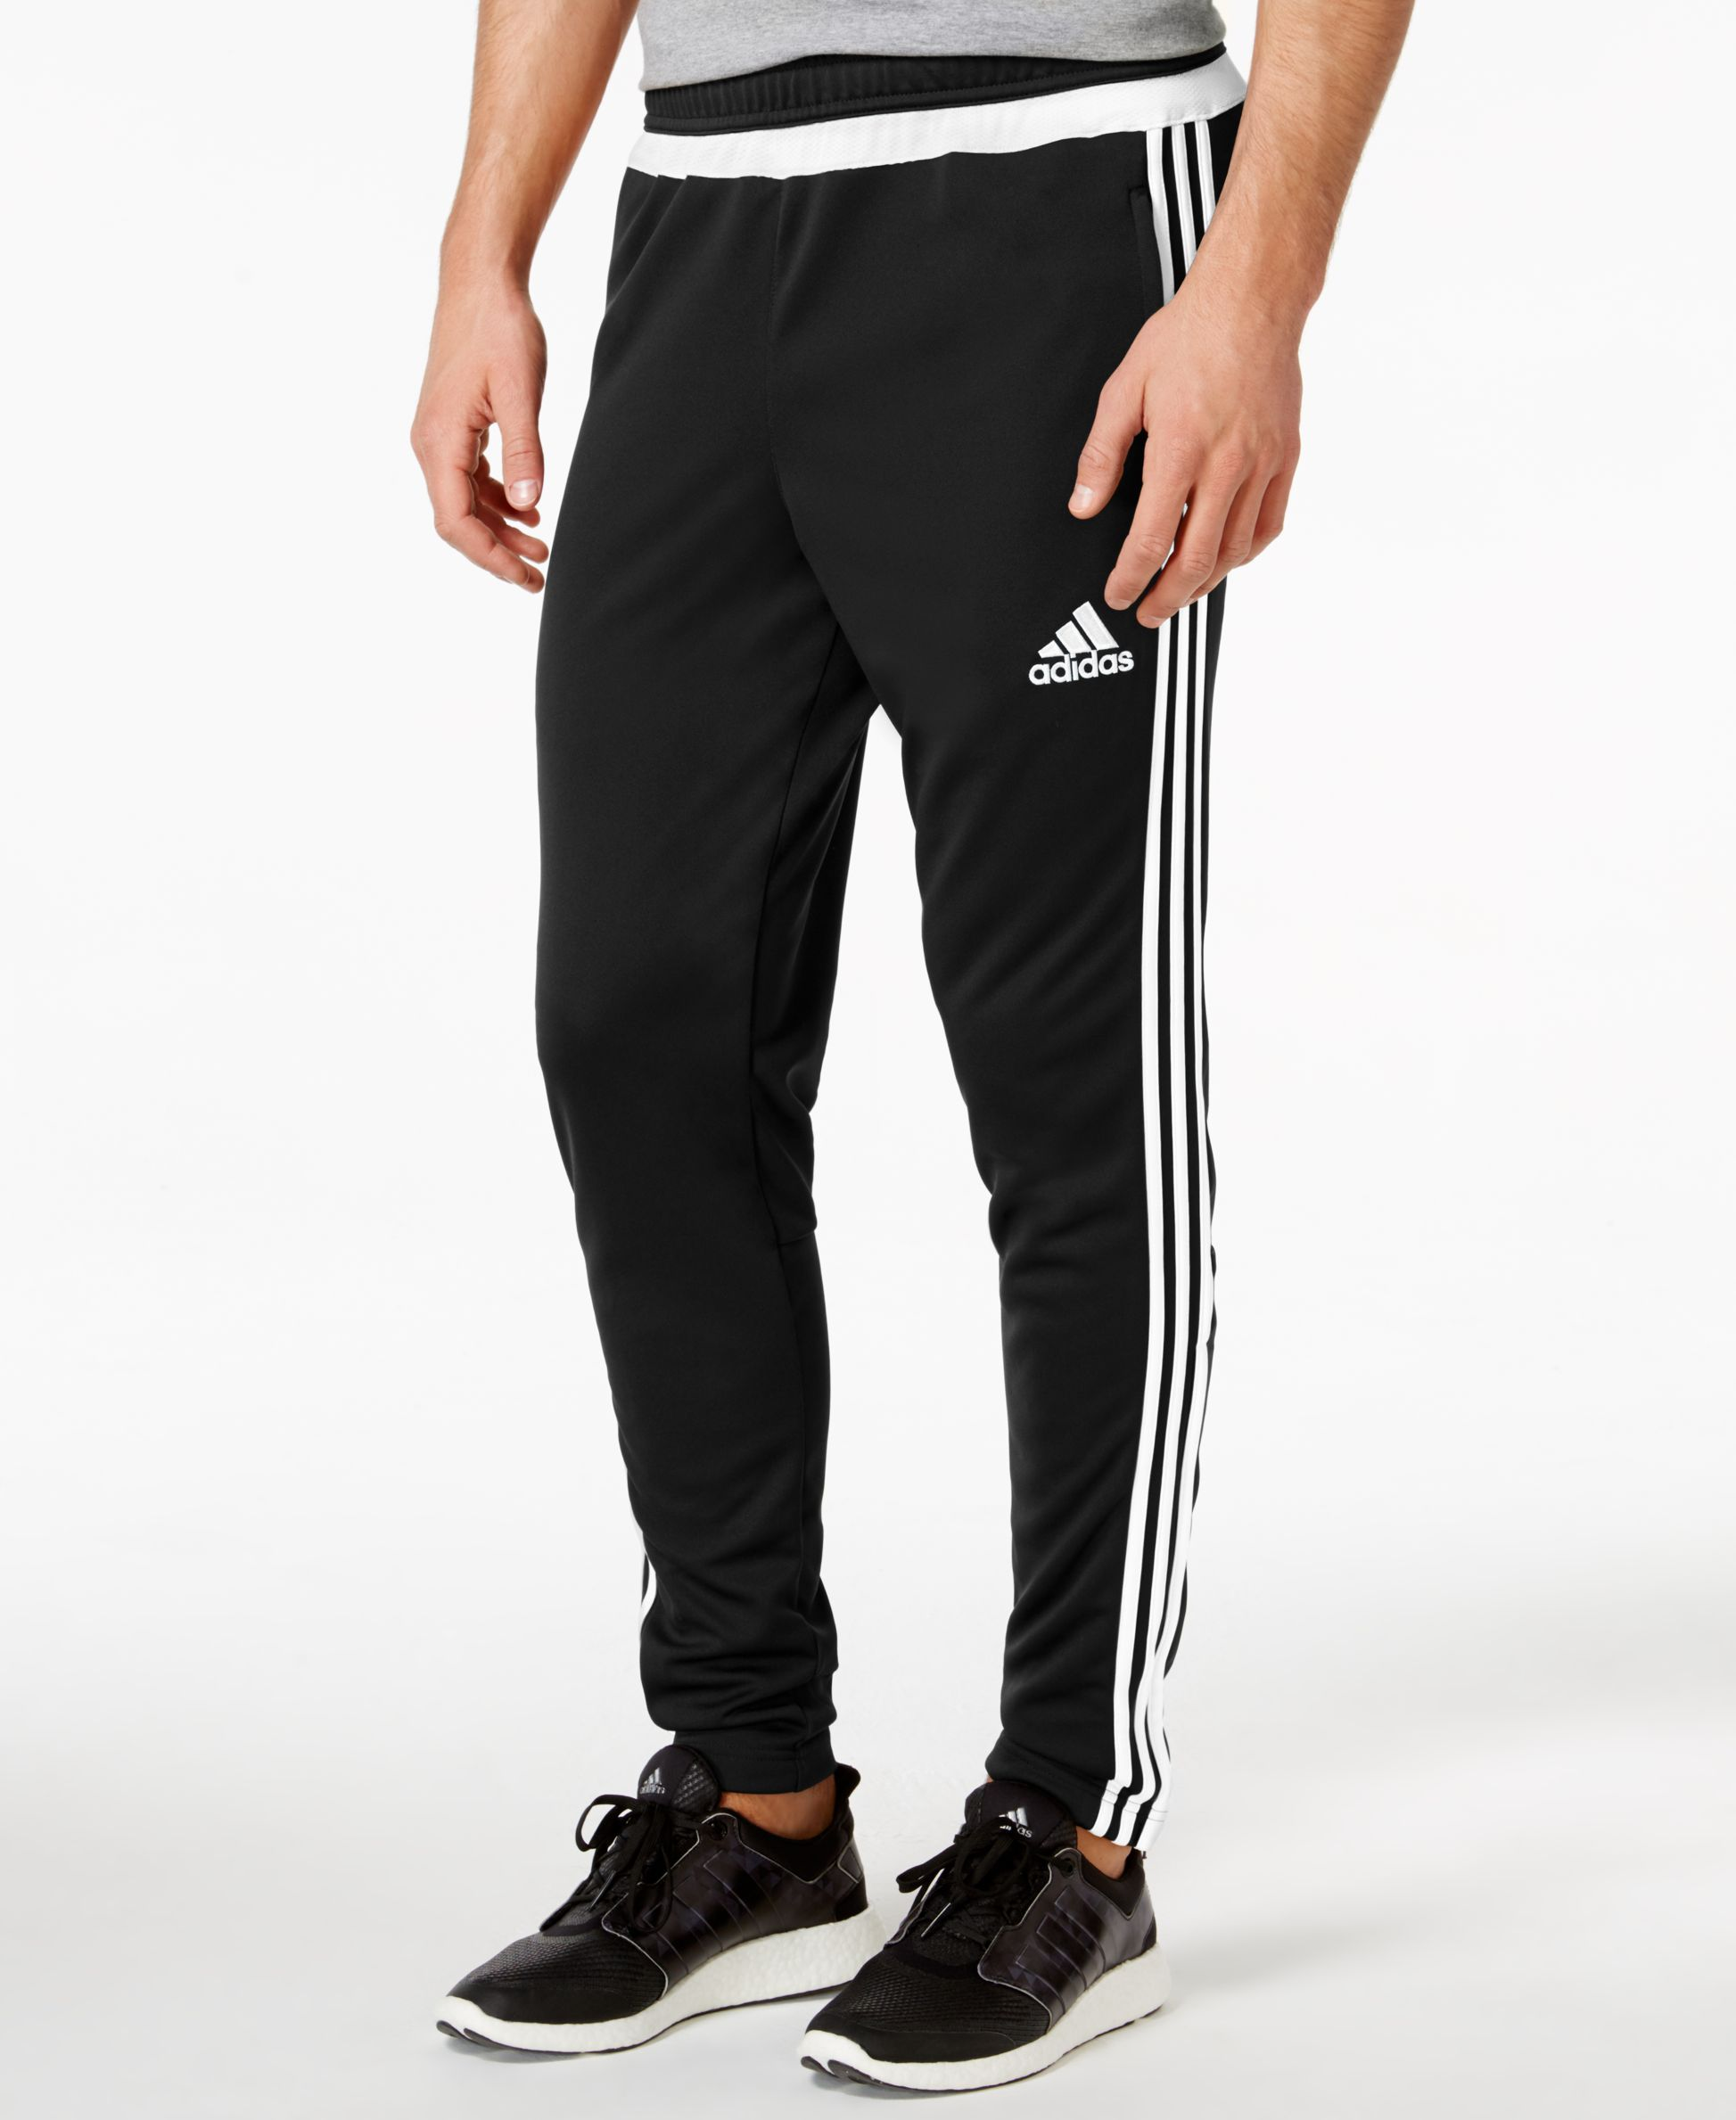 adidas Men's Tiro 15 ClimaCool Training Pant